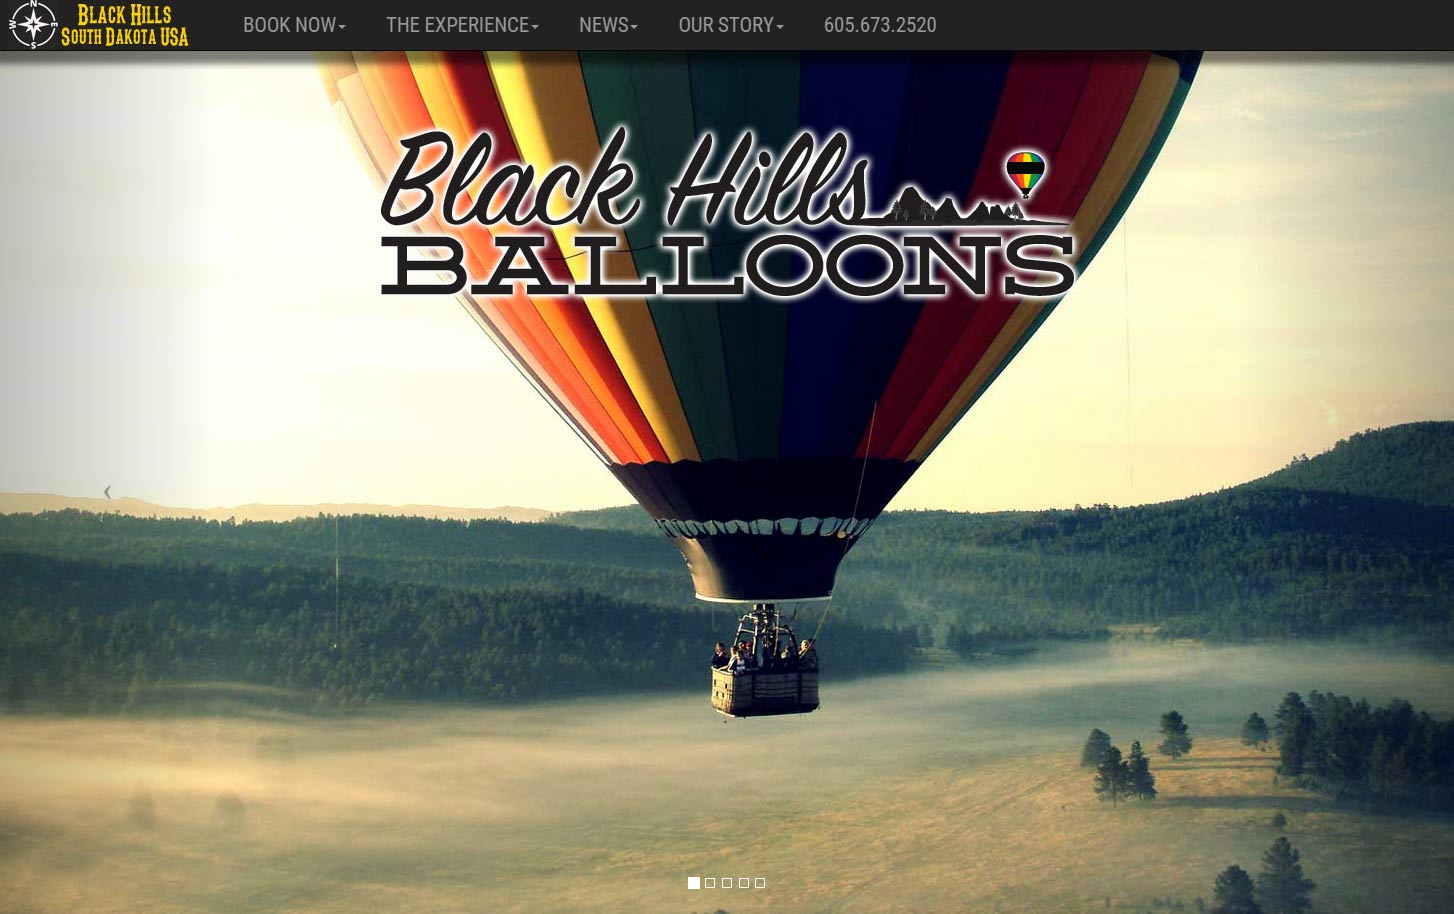 Black Hills Balloons Website Example